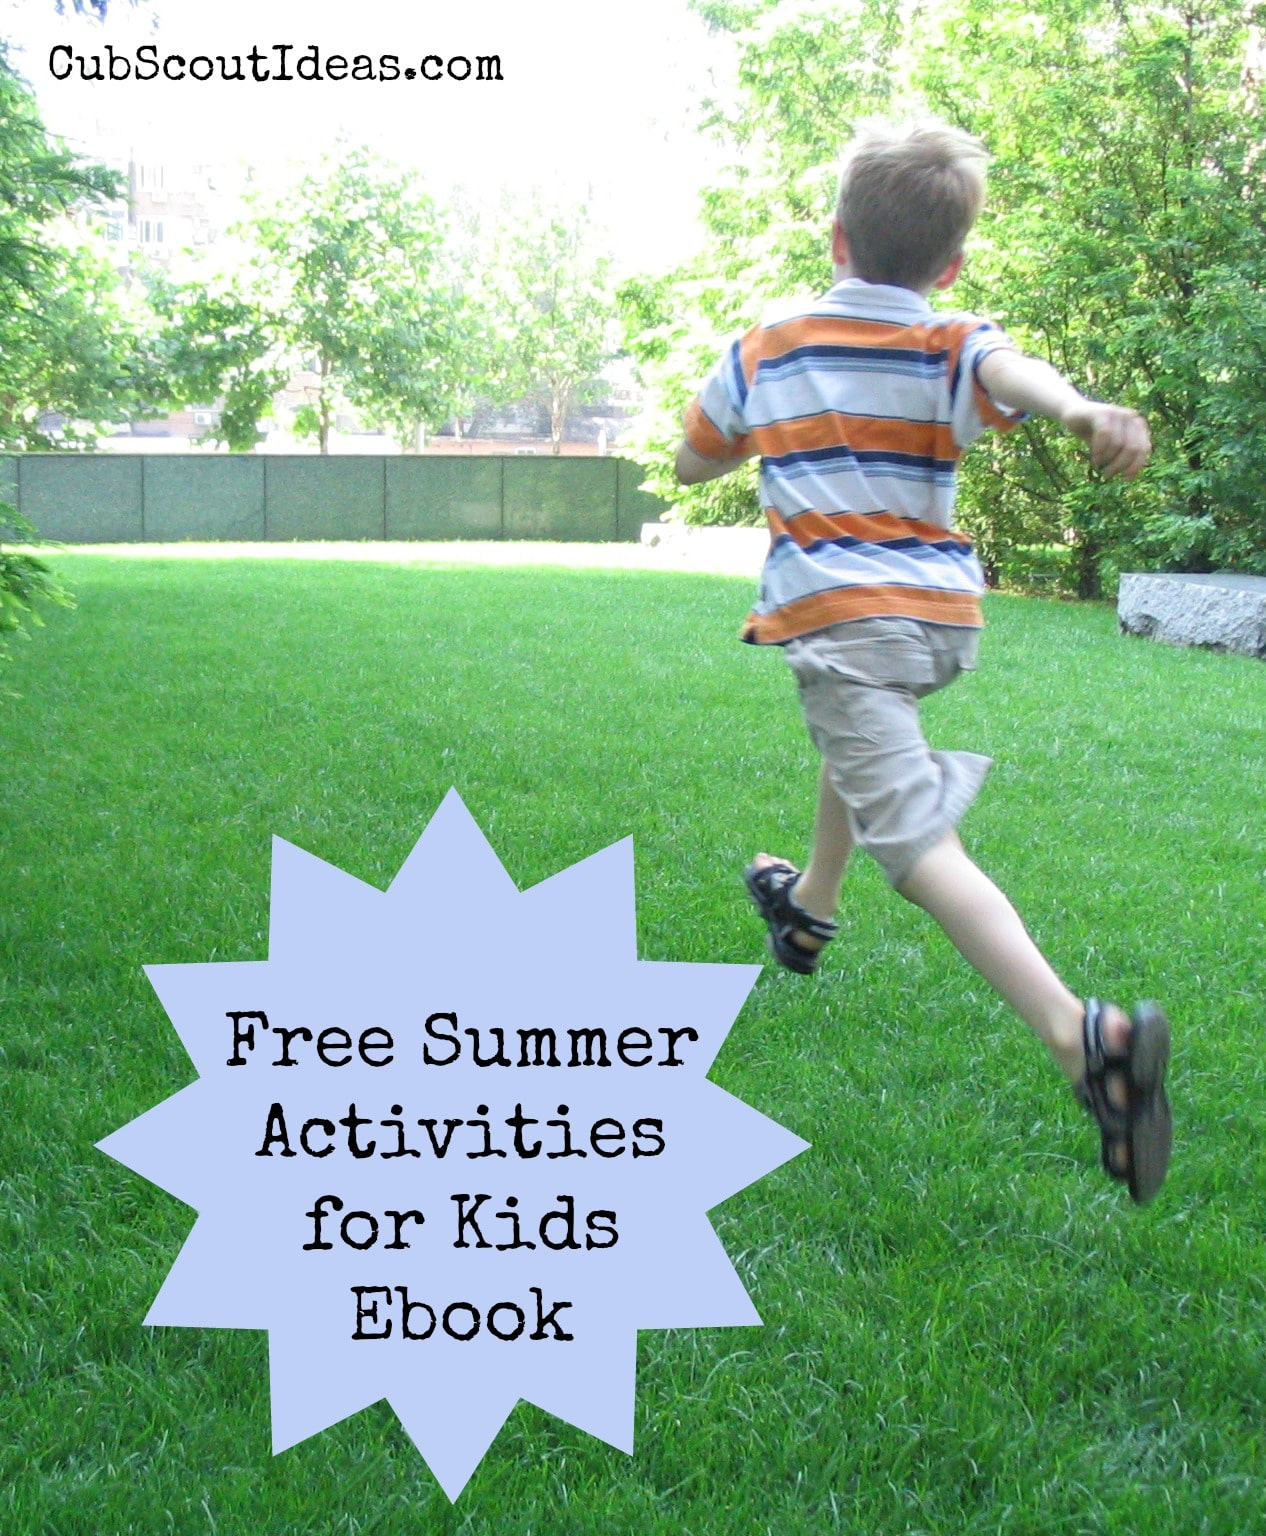 cub scout free summer activities